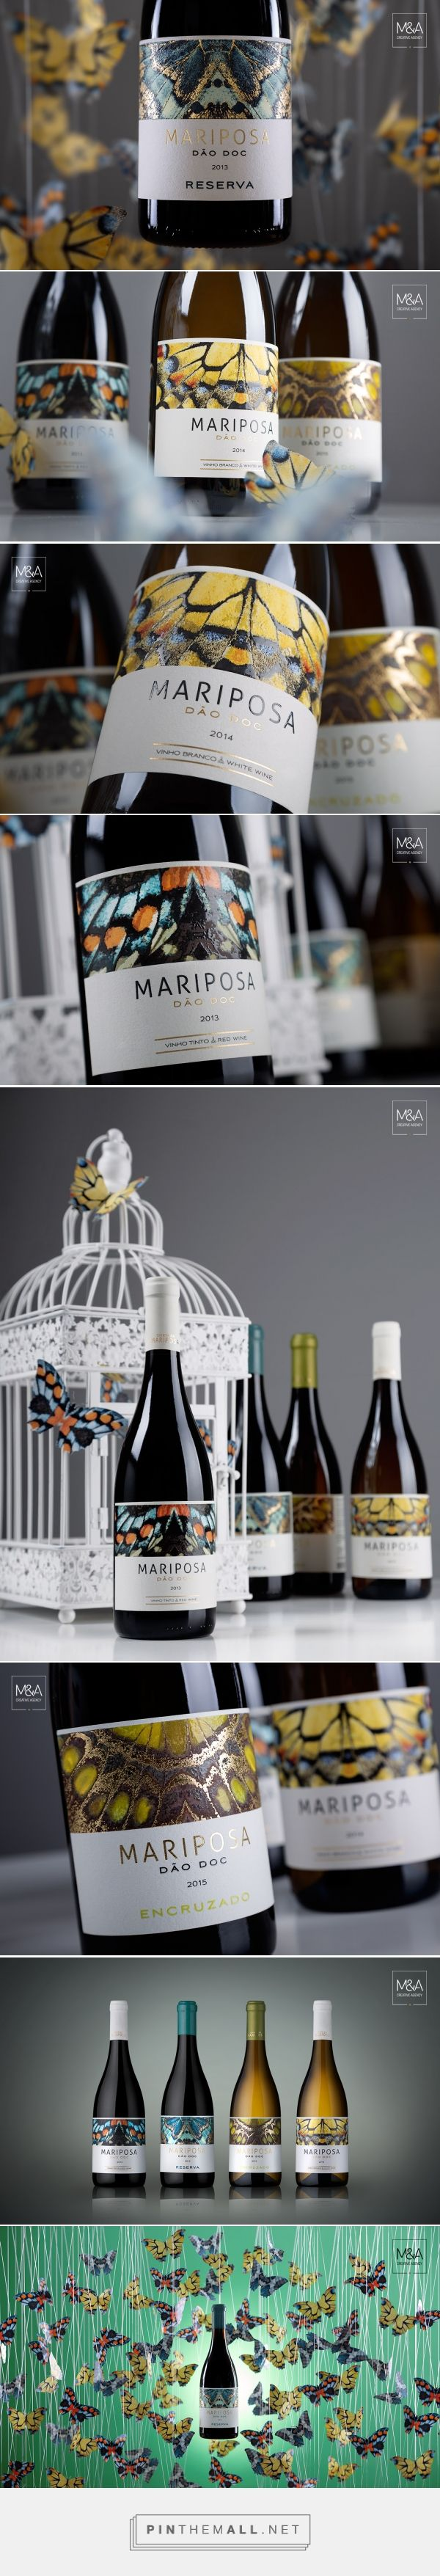 Quinta da Mariposa wine label design by M&A Creative Agency - http://www.packagingoftheworld.com/2017/02/quinta-da-mariposa.html